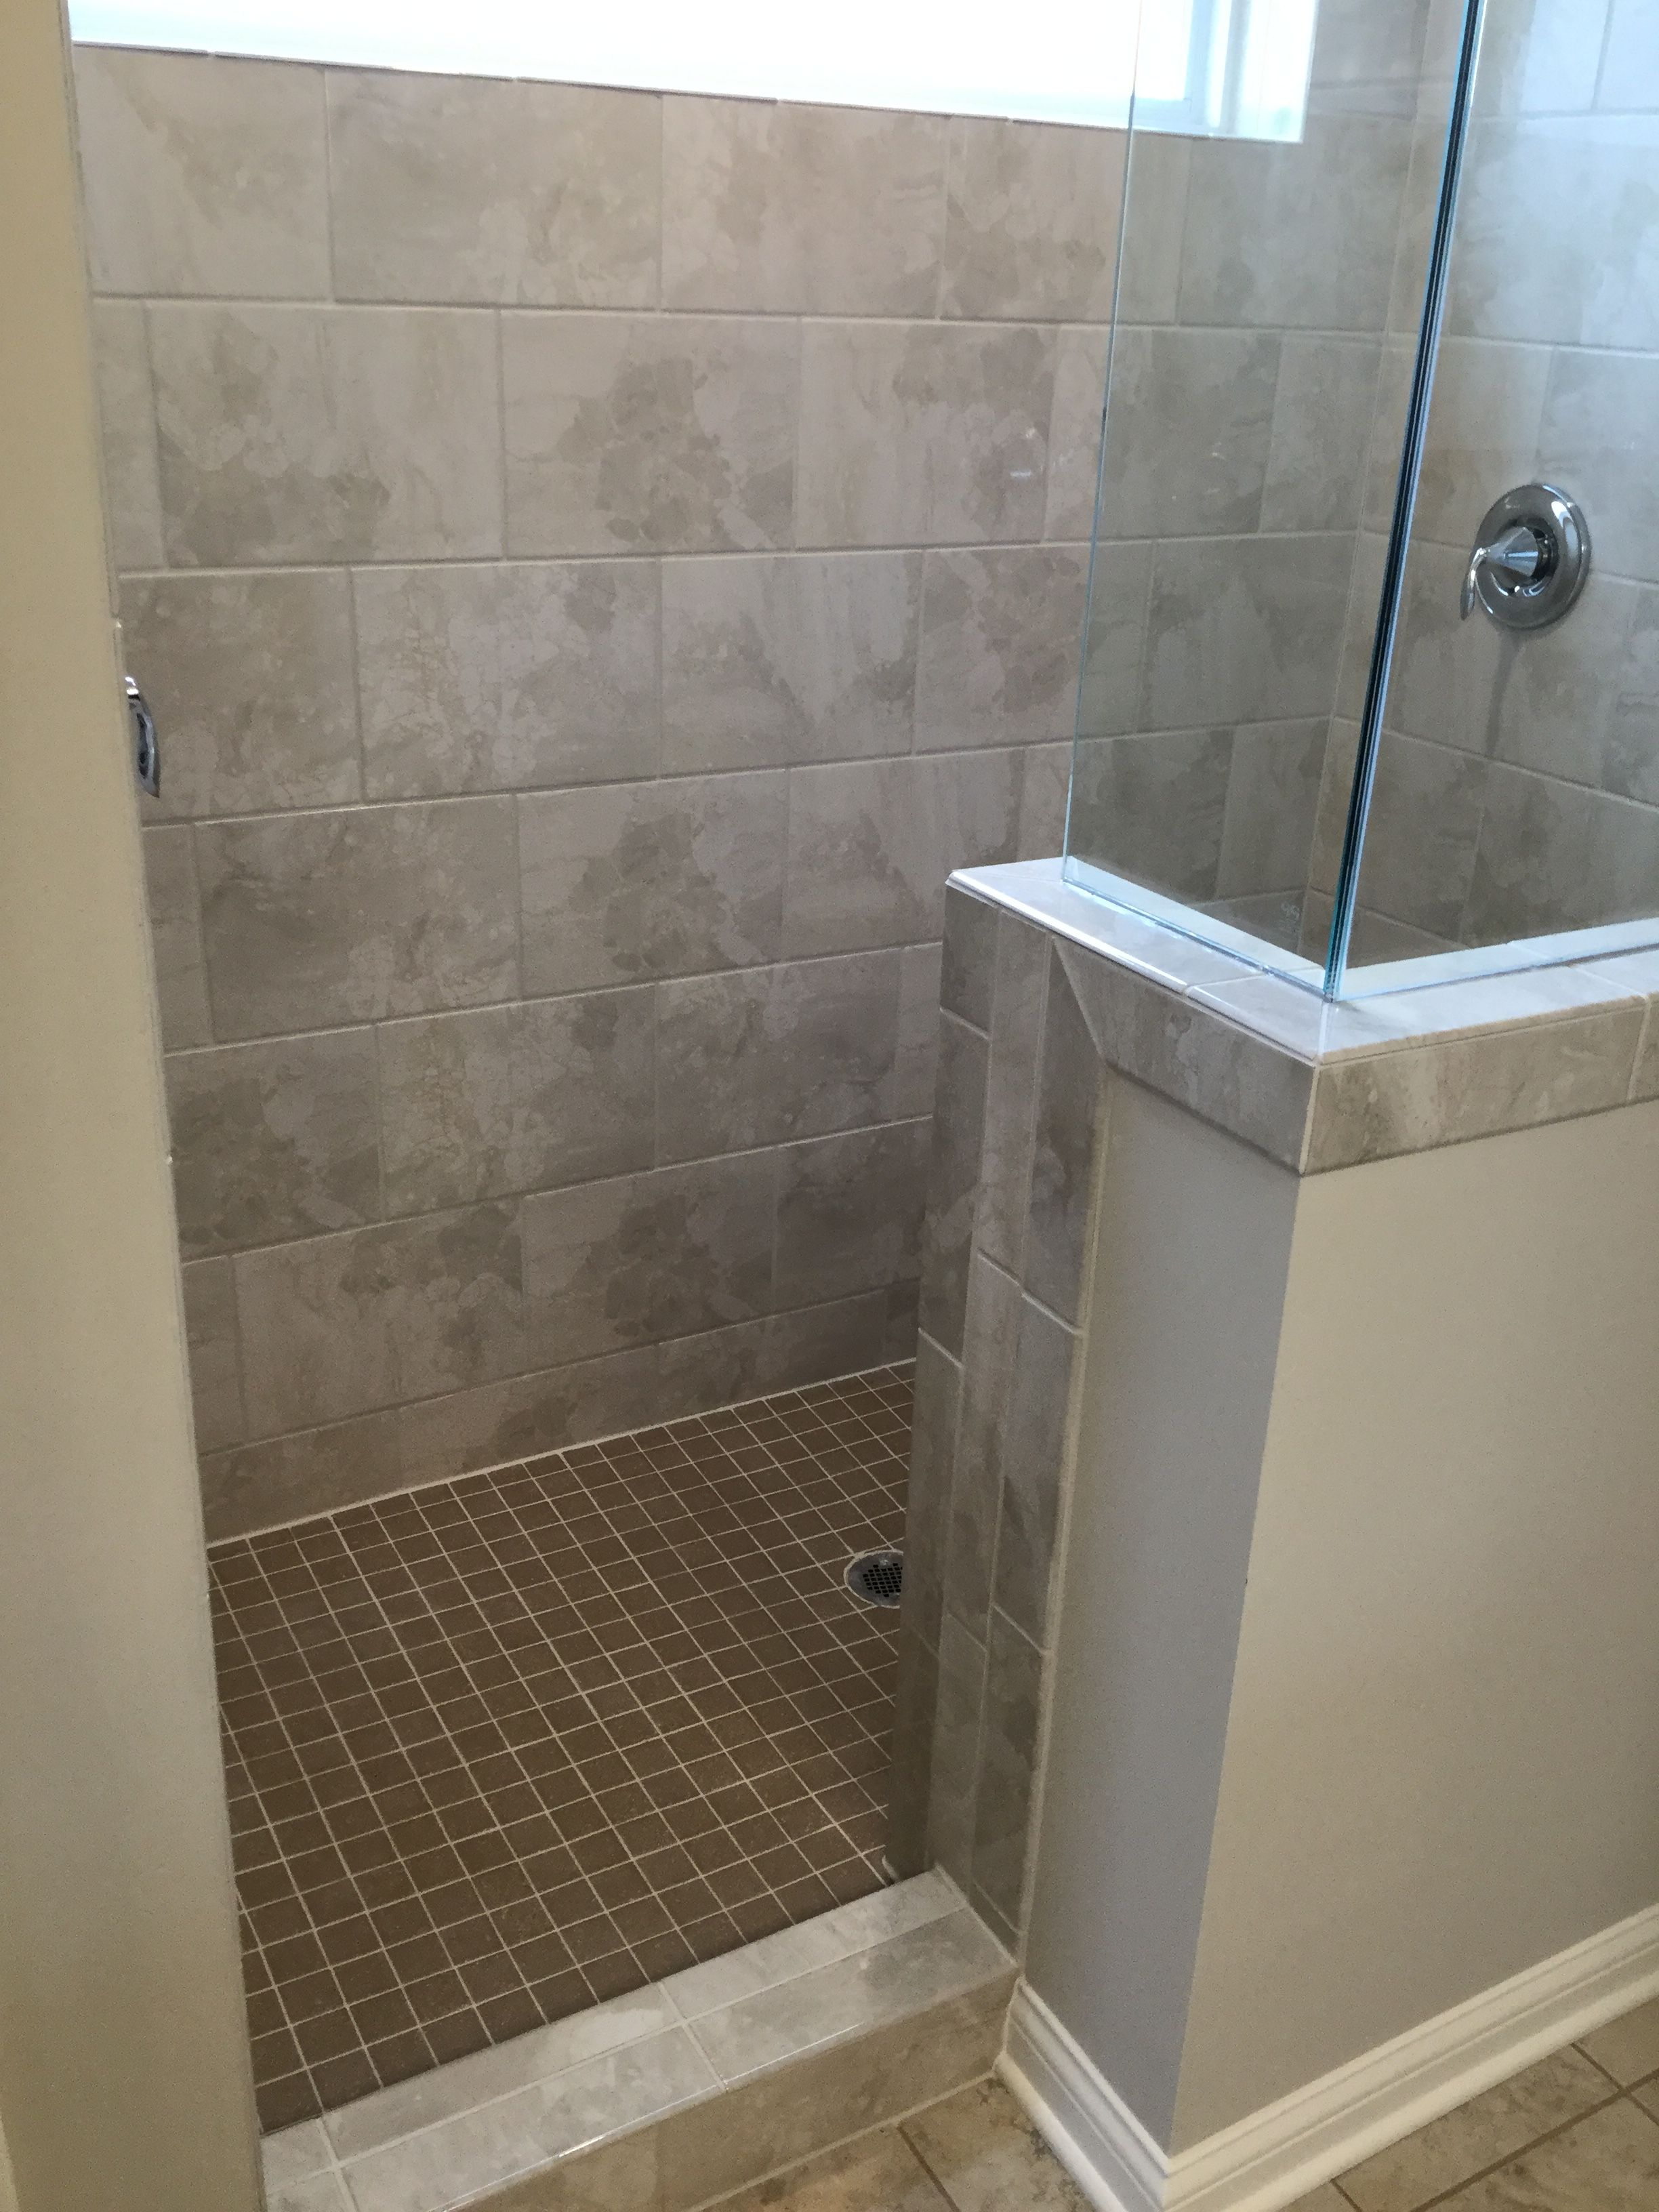 Marble Falls 10x14 Crystal Sands Wall Tile Installed Brick Joint Bath Tiles Tile Bathroom Wall Tiles